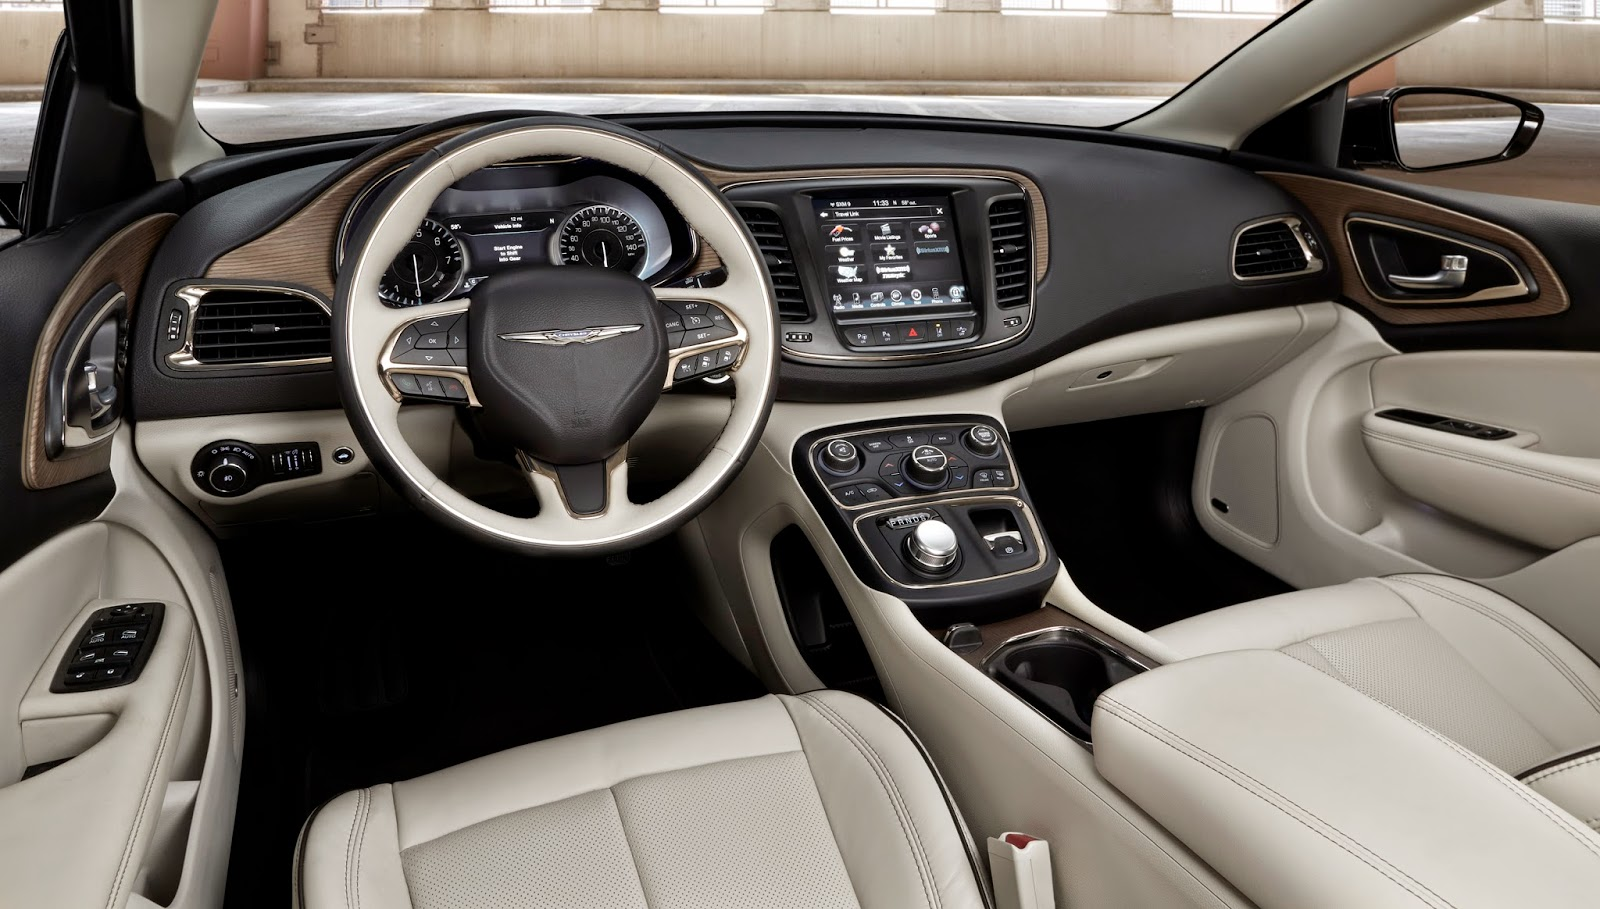 Interior view of 2015 Chrysler 200C